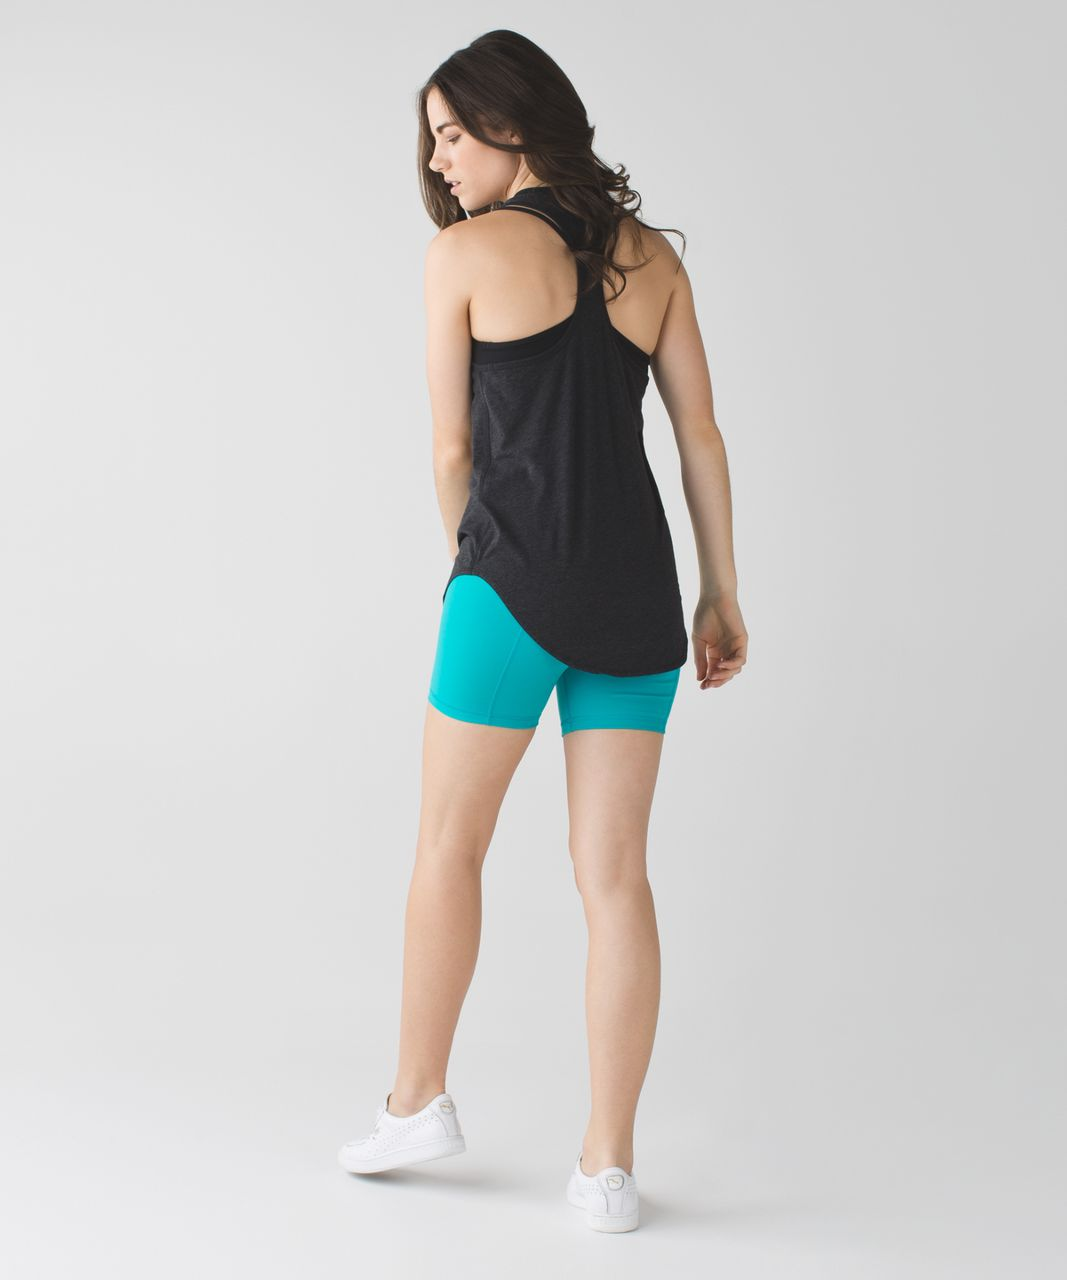 Lululemon Groove Short II (Roll Down - Regular) *Full-On Luon - Peacock Blue